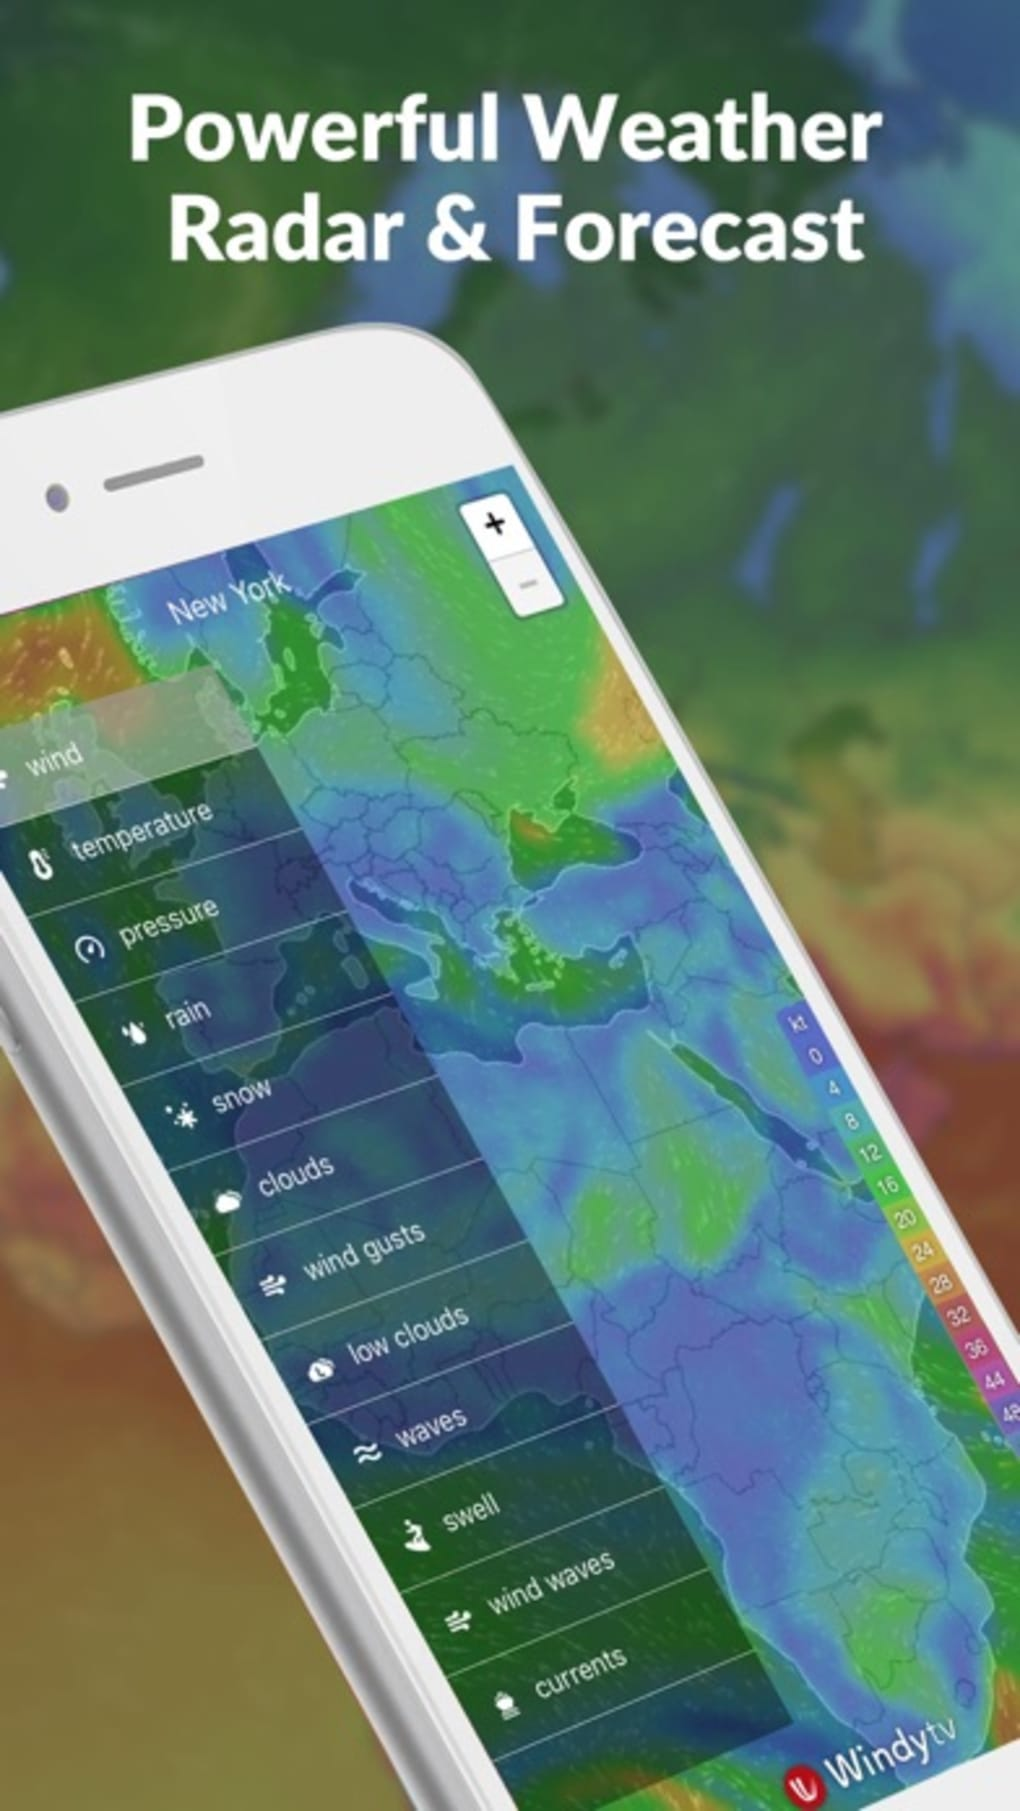 Live Weather: Alert Forecast for iPhone - Download